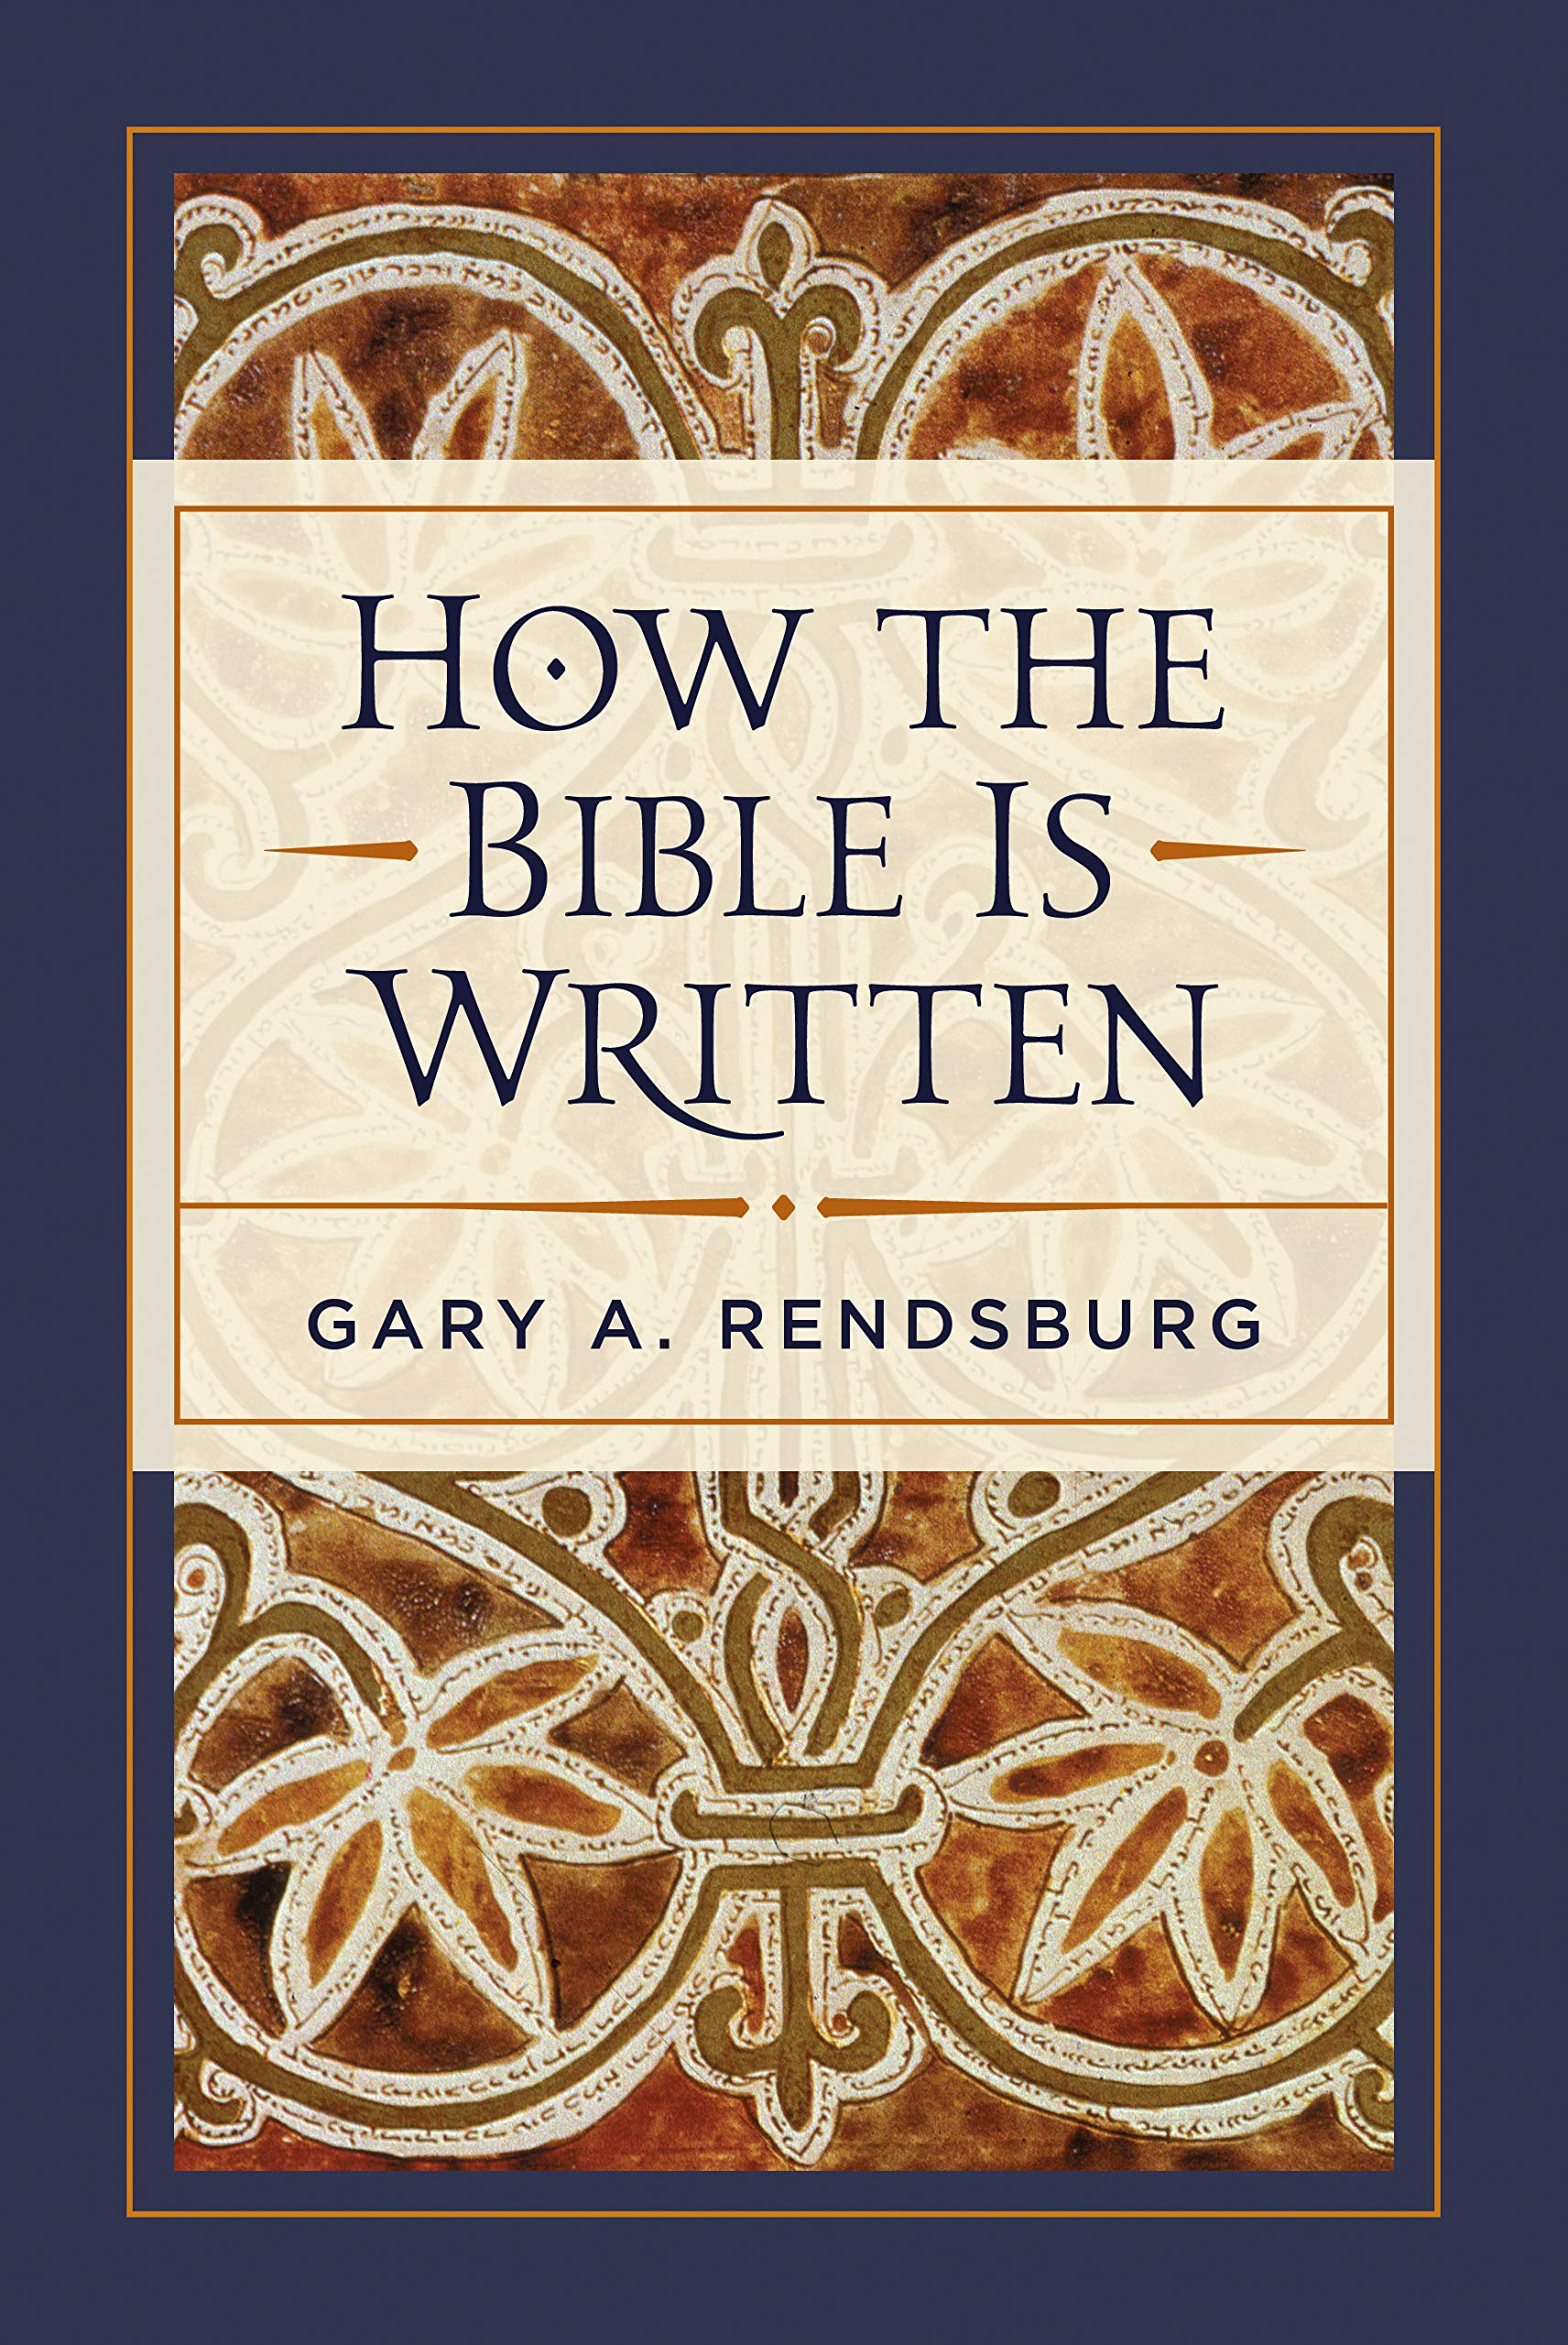 How the Bible Is Written: Gary Rendsburg: 9781683071976